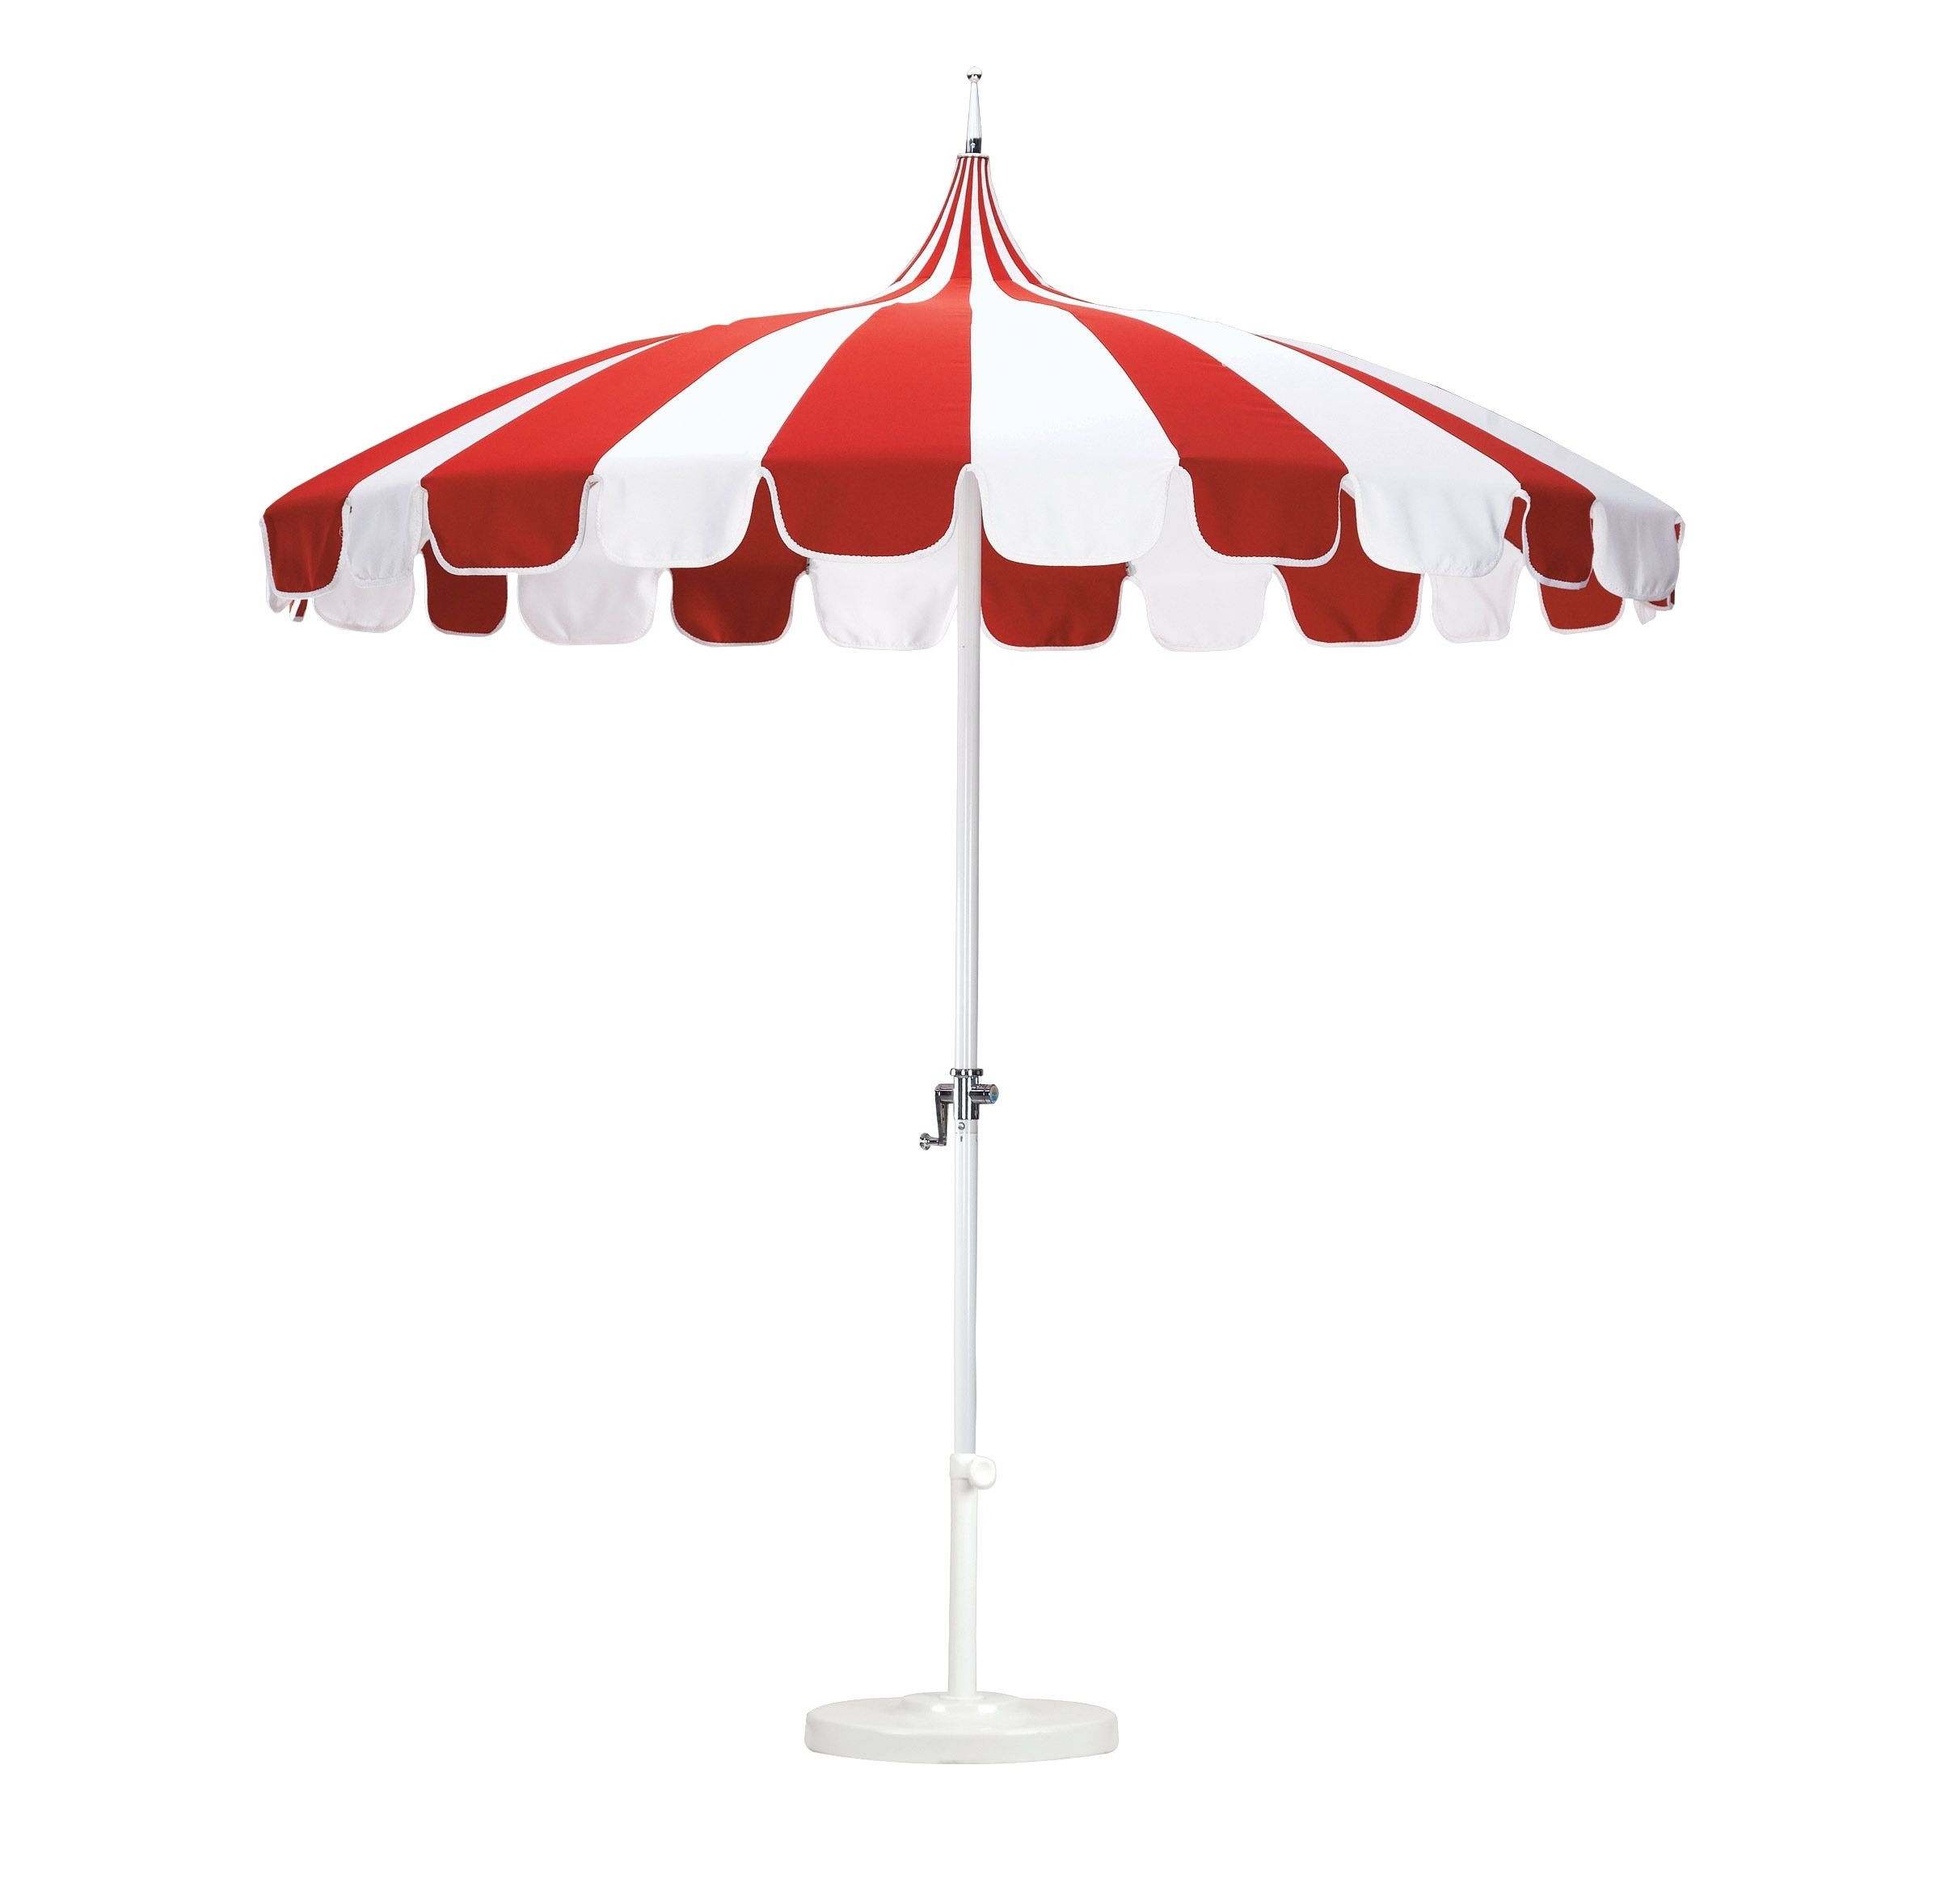 Sunbrella Patio Umbrella Look More At Concept Of Black And White Inside Most Up To Date Black And White Striped Patio Umbrellas (View 11 of 20)